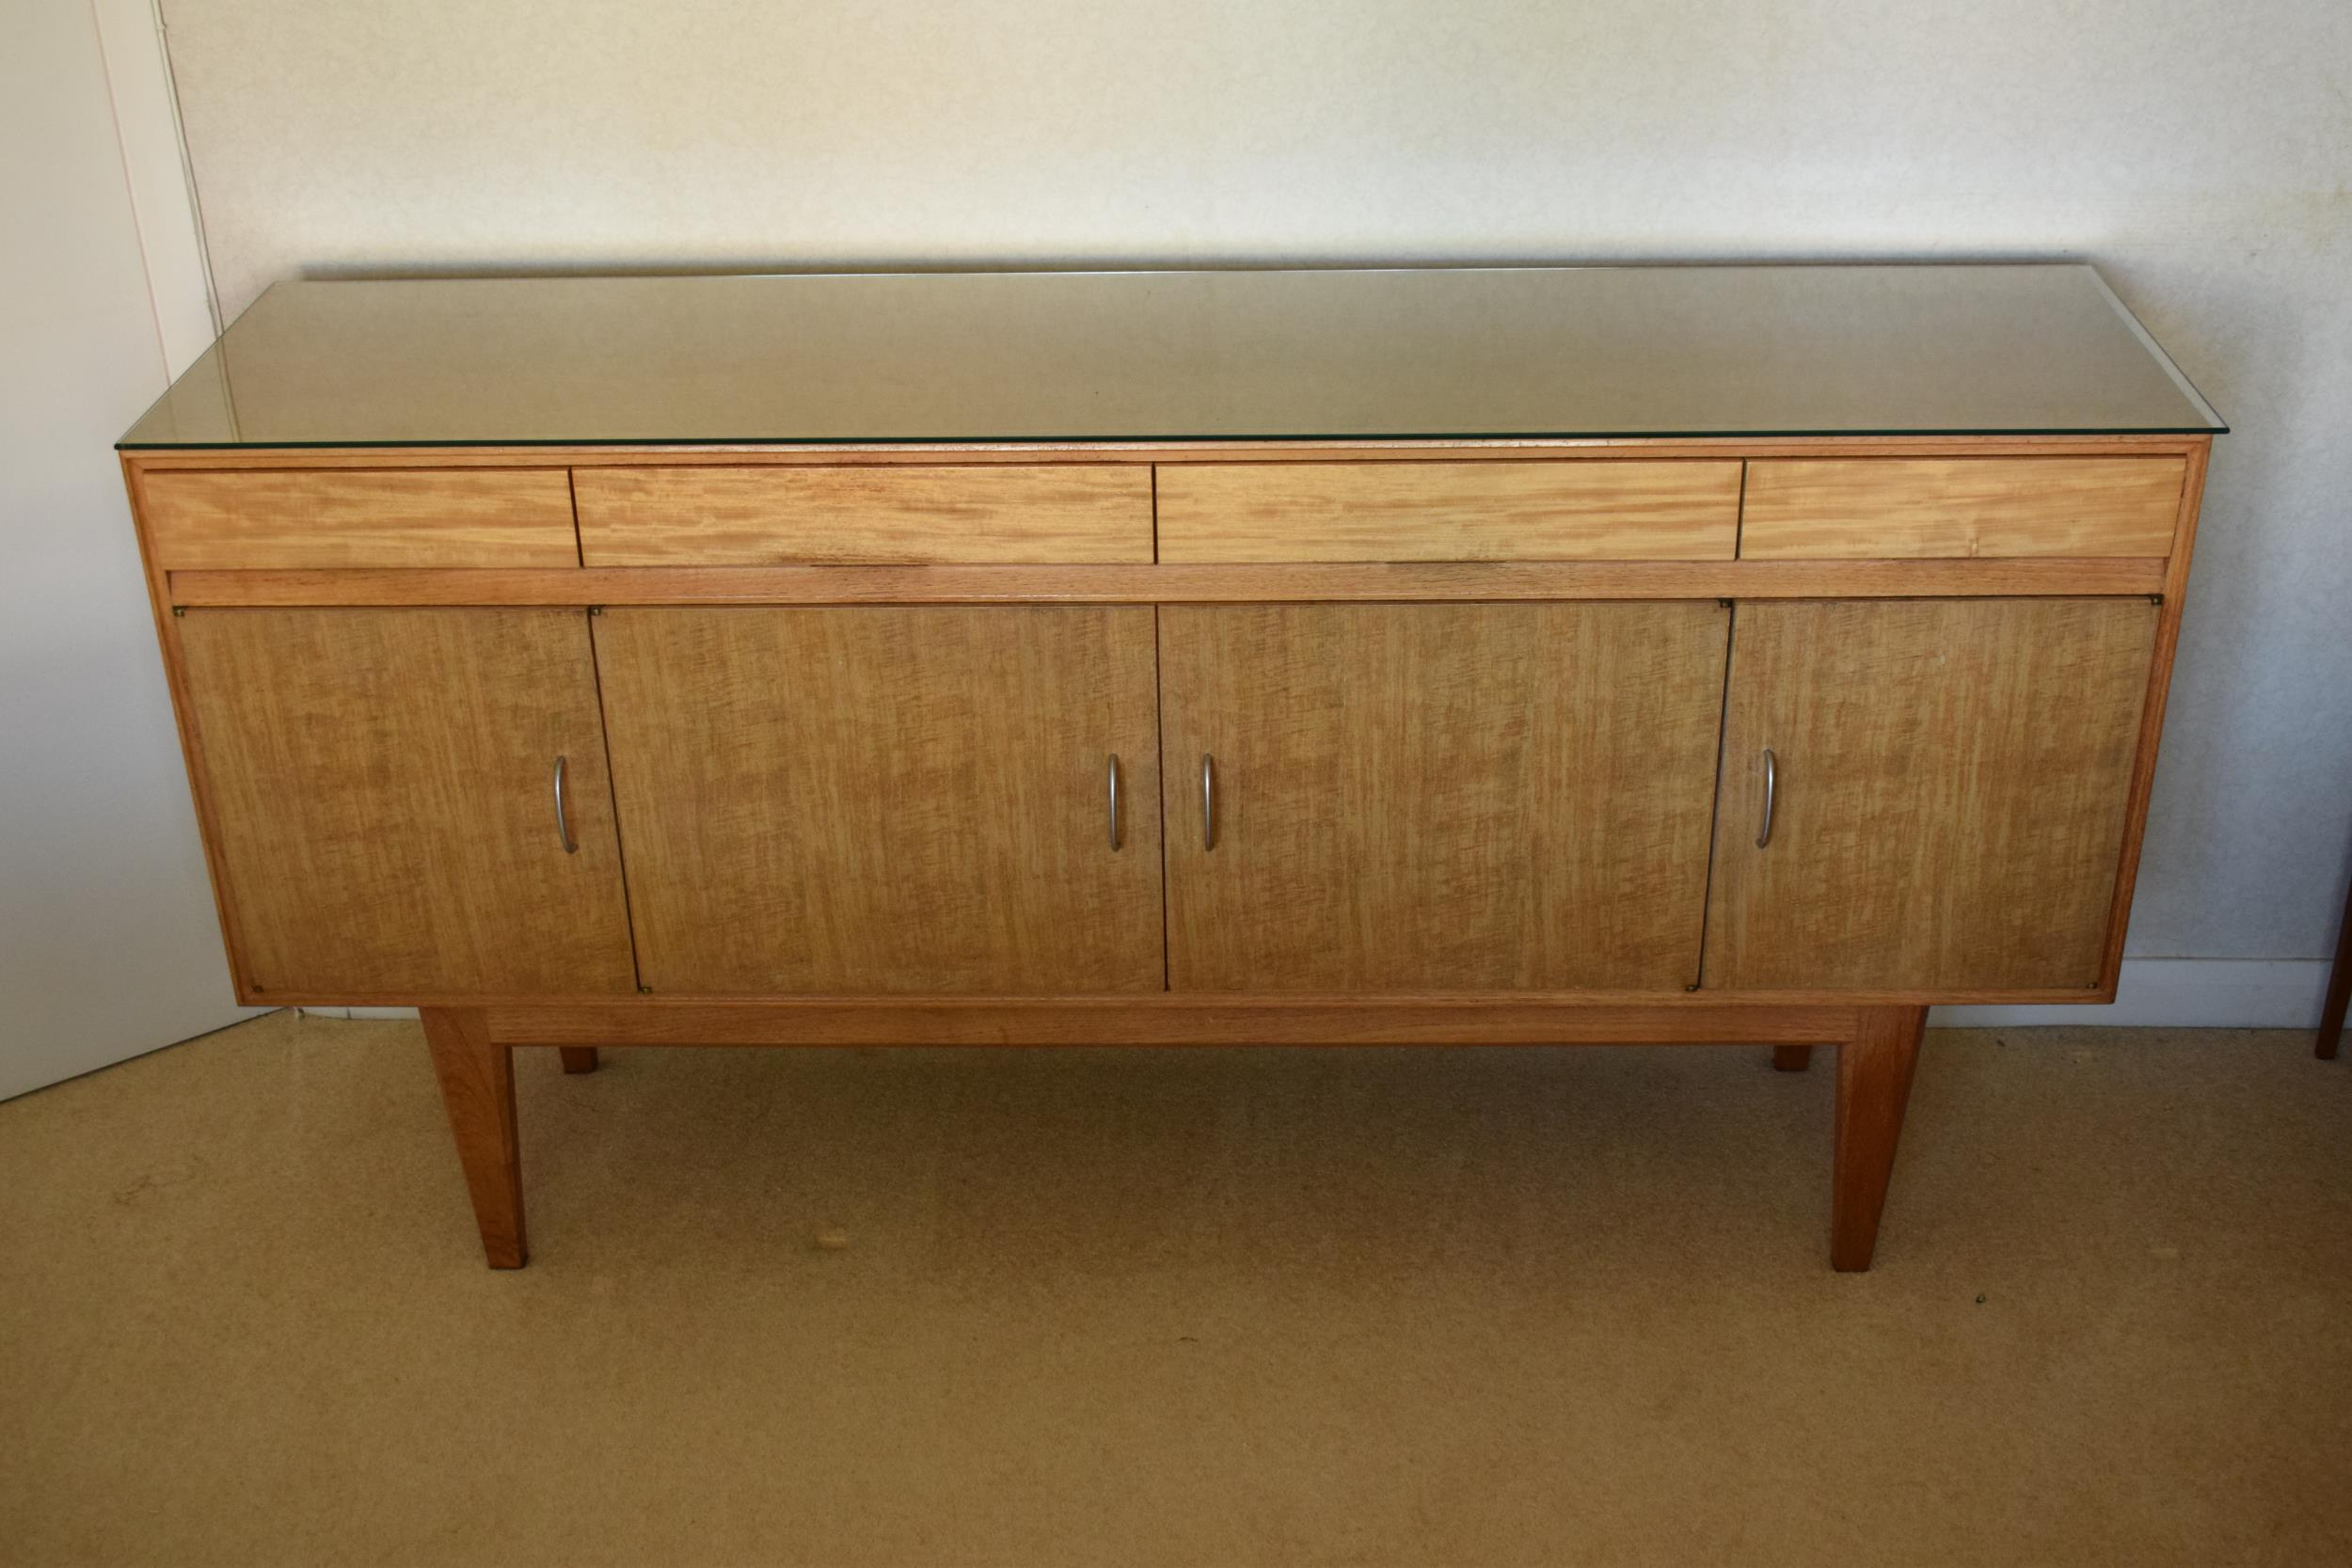 Gordon Rusell Limited four-door mid-century / retro sideboard on tapered legs with 4 drawers too.